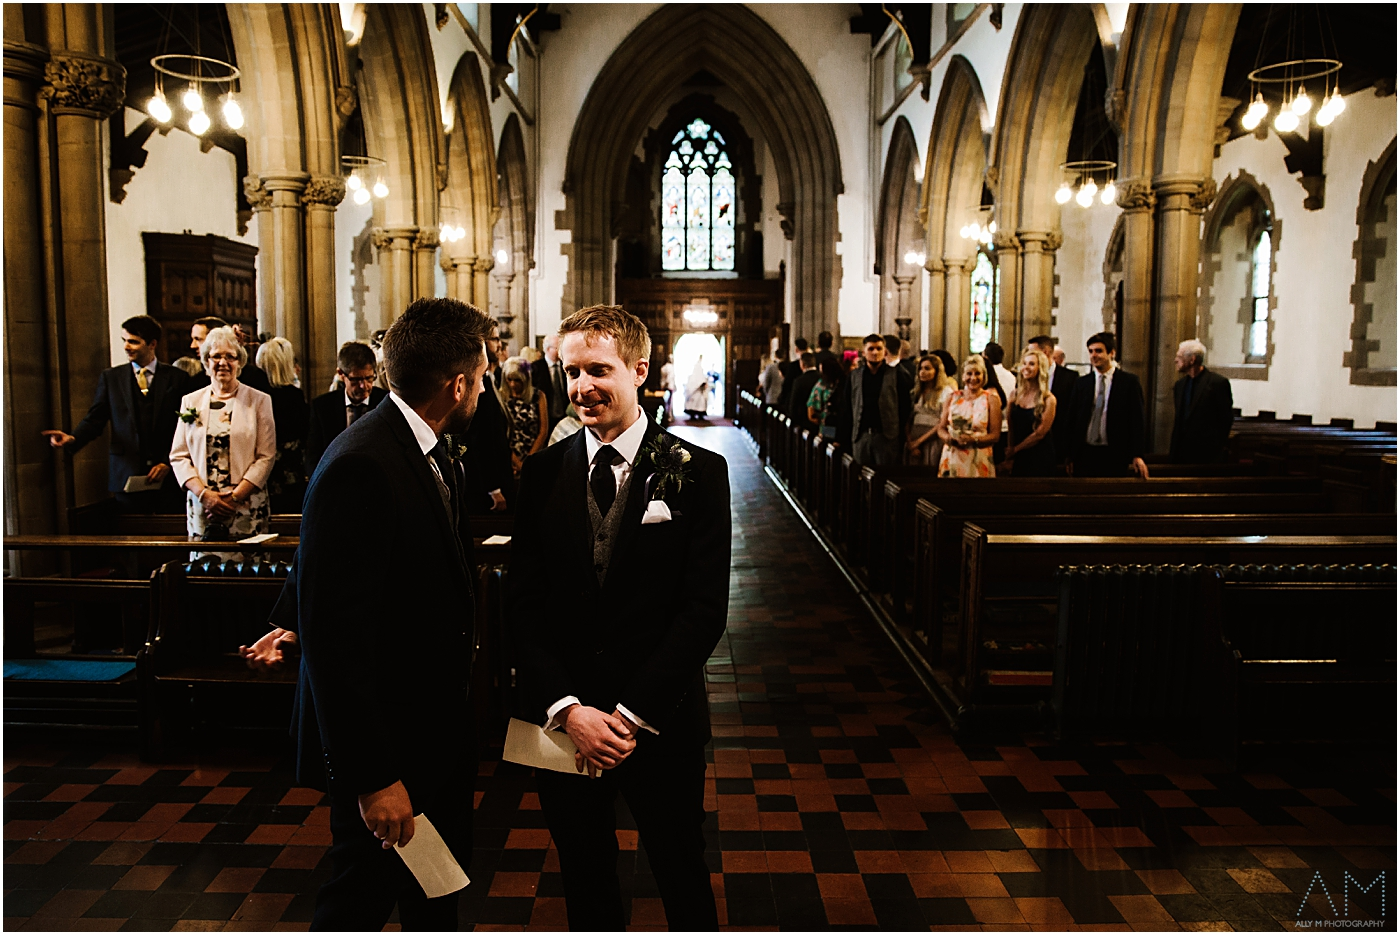 Groom and best man in the church